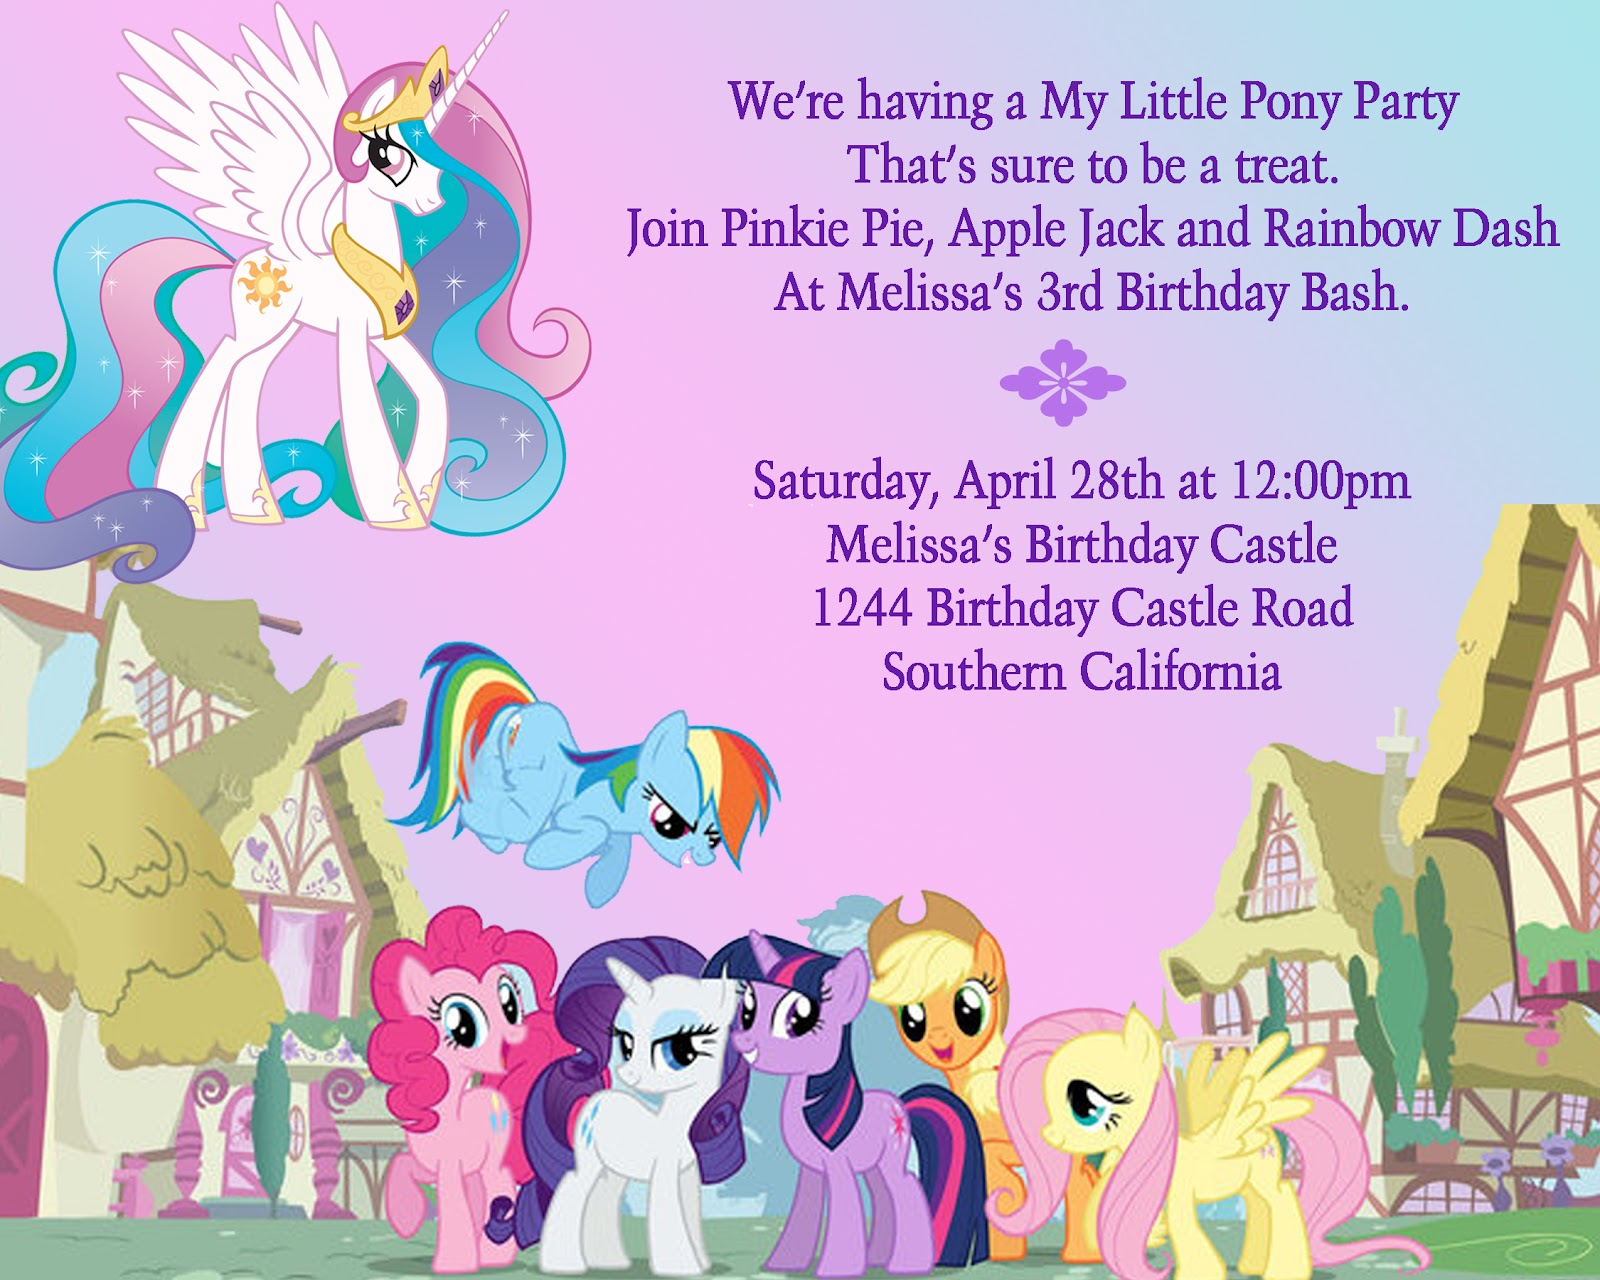 Birthday Party Ideas My Little Pony Birthday Party Invitation Ideas - My little pony birthday party invitation template